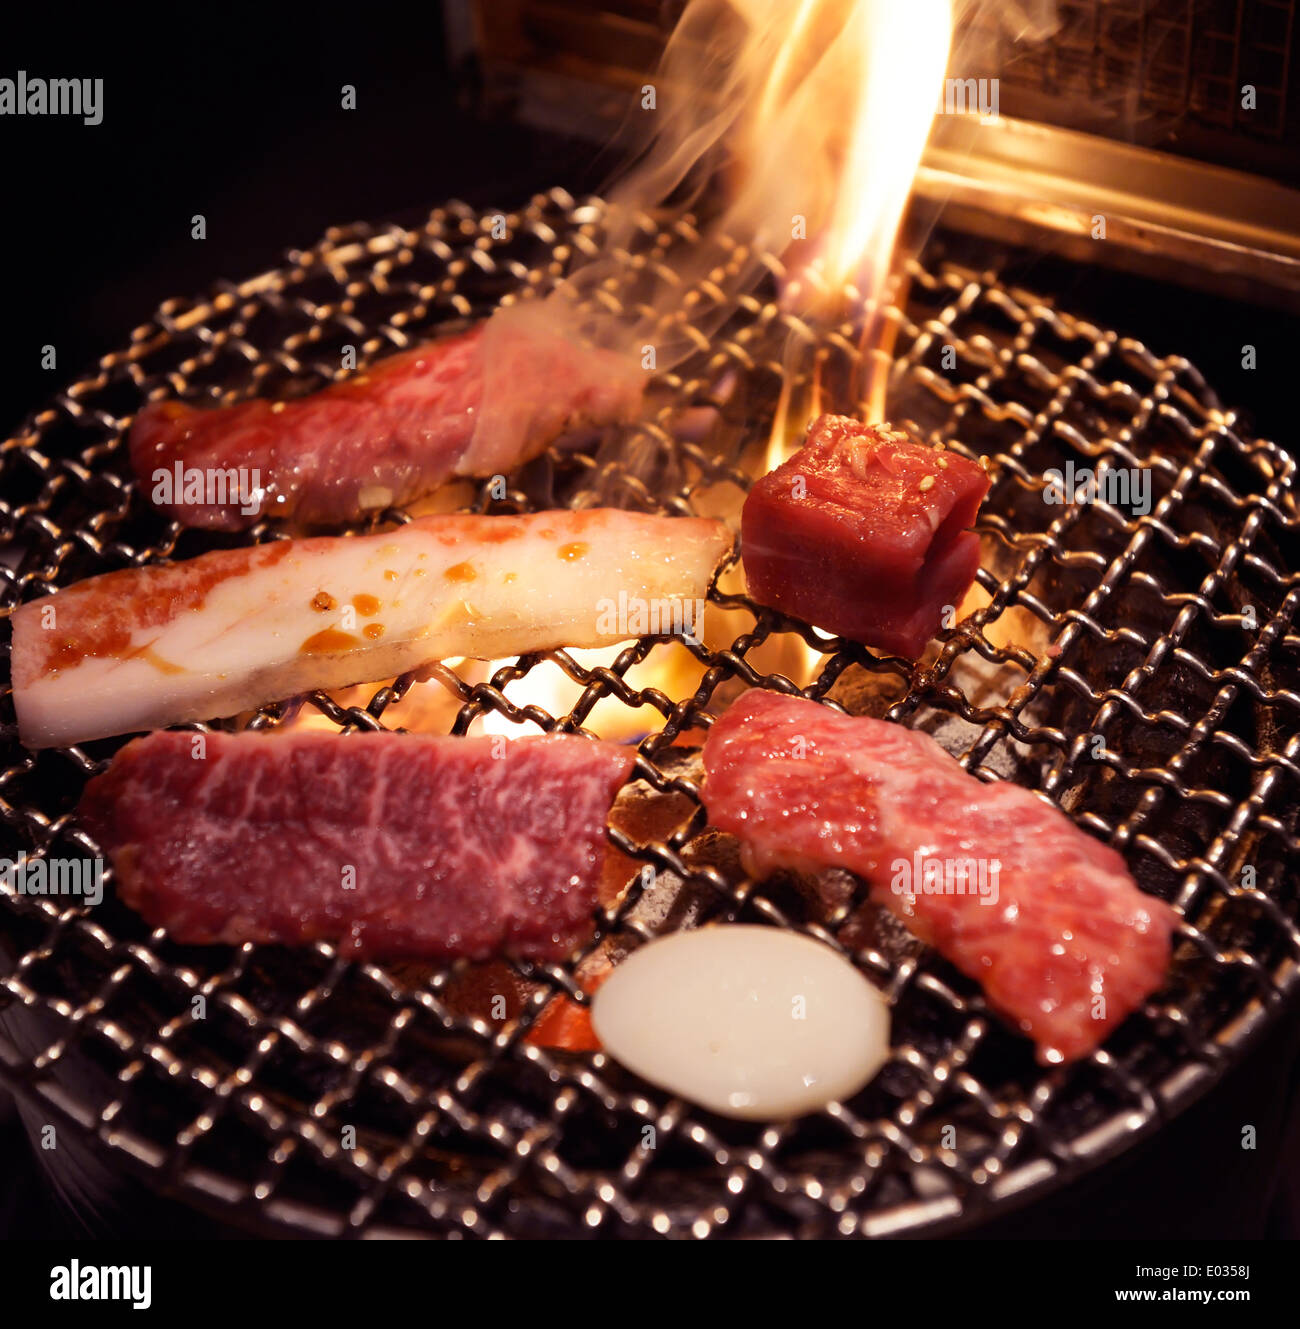 Meat On Grill Being Cooked On Fire At A Japanese Grill Restaurant Stock Photo Alamy